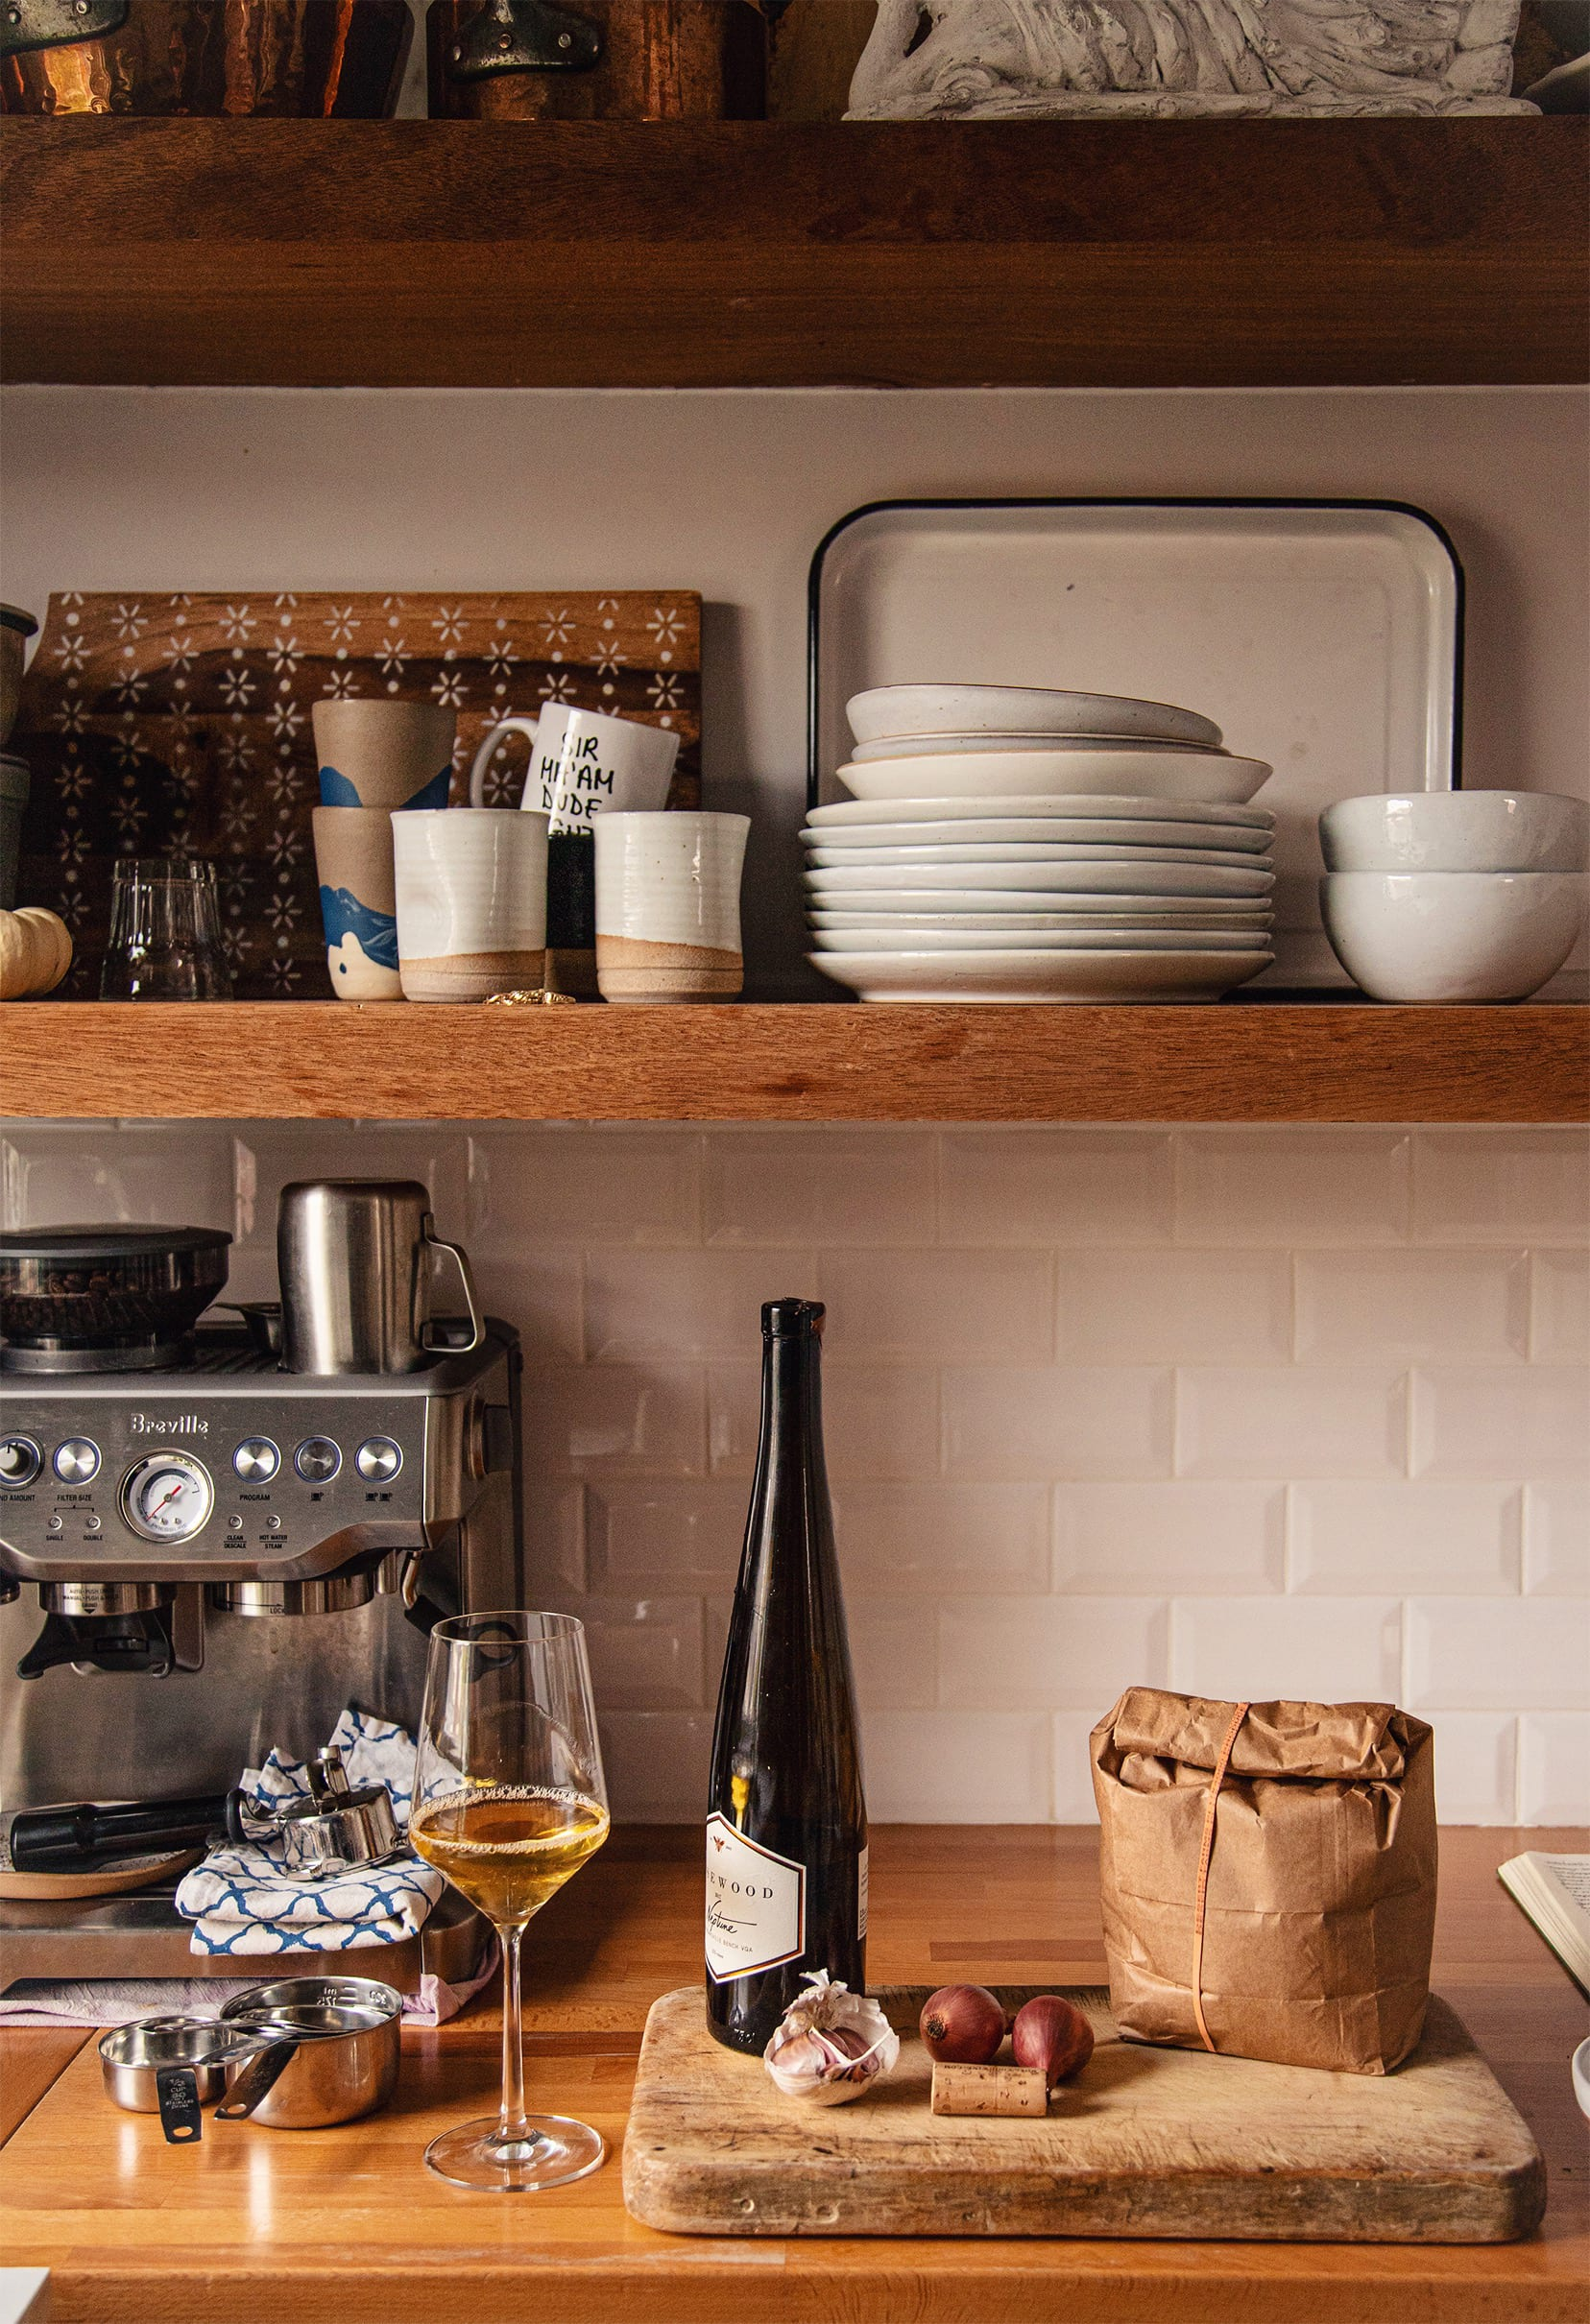 A shot of Laura's open kitchen shelves with a bottle of wine, a glass of wine and a paper bag on the counter.